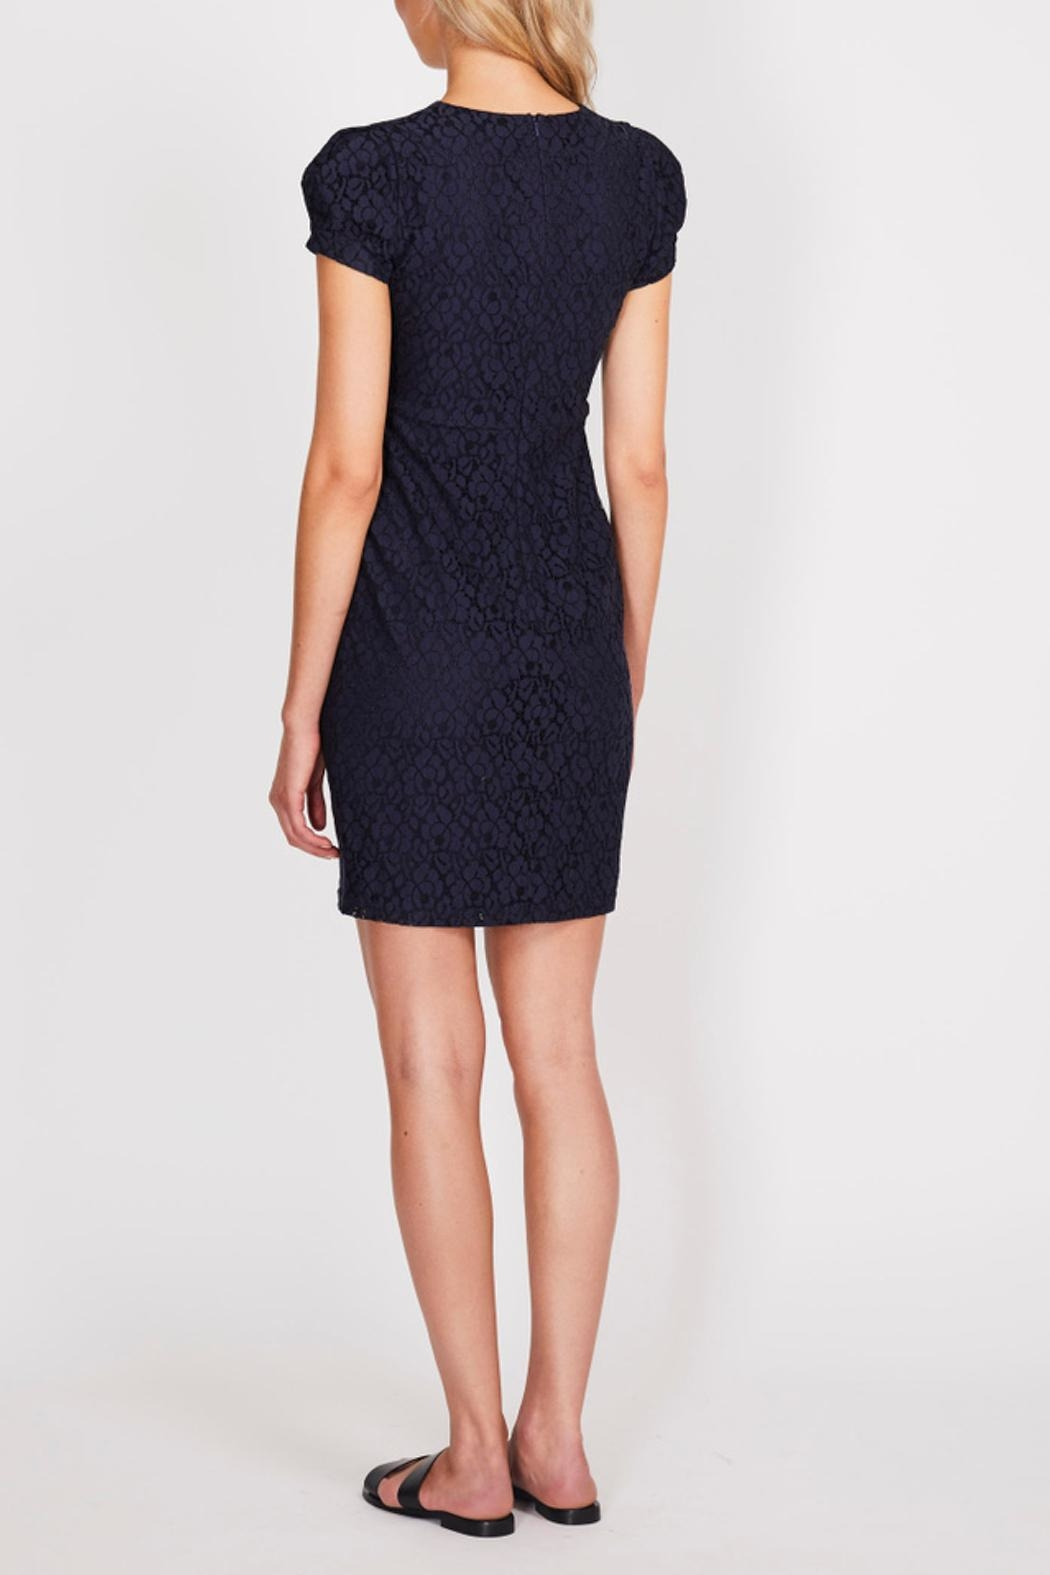 Dry Lake Navy Lace Dress - Front Full Image